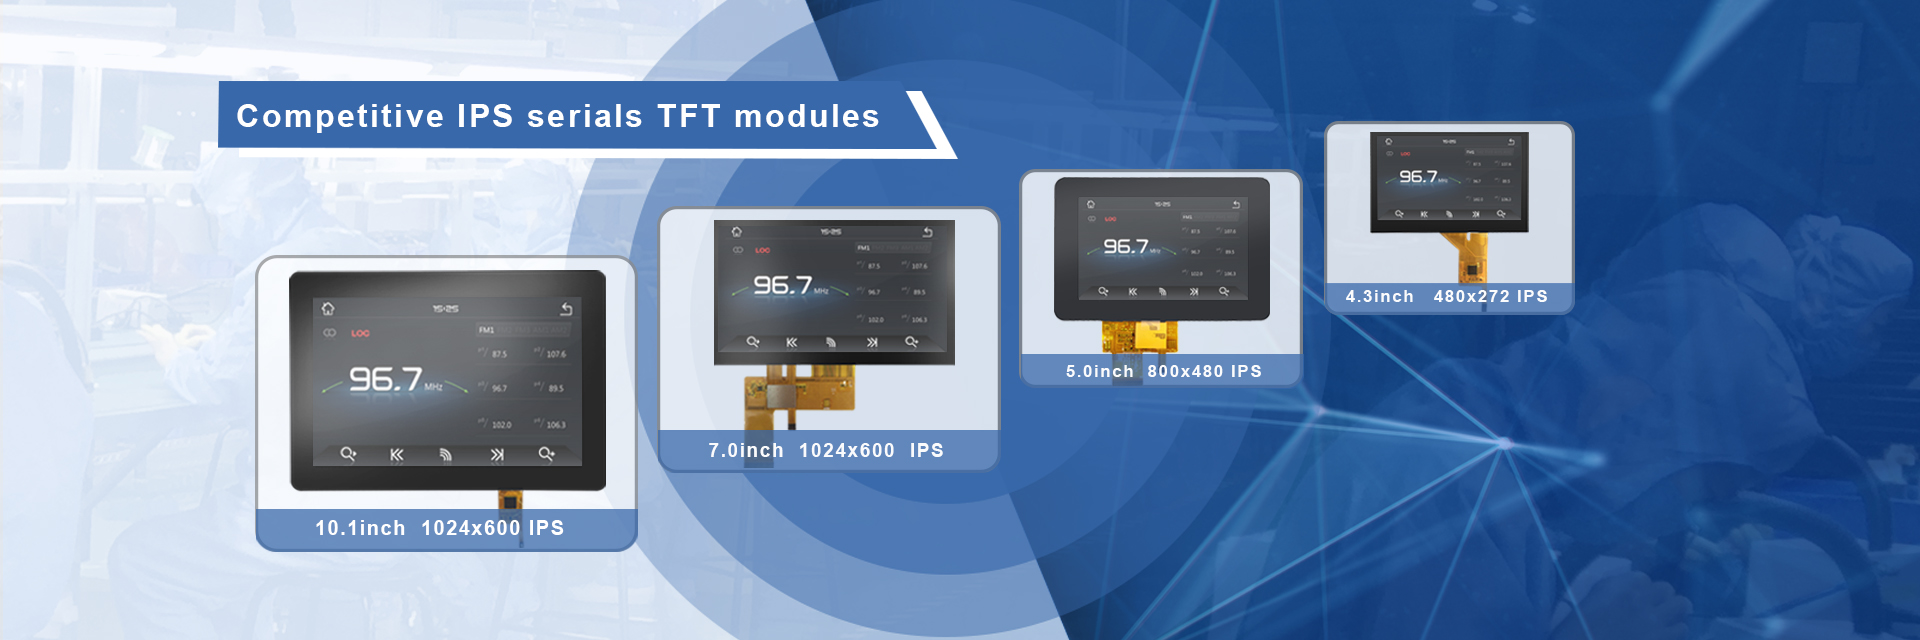 Competitive IPS serials TFT modules